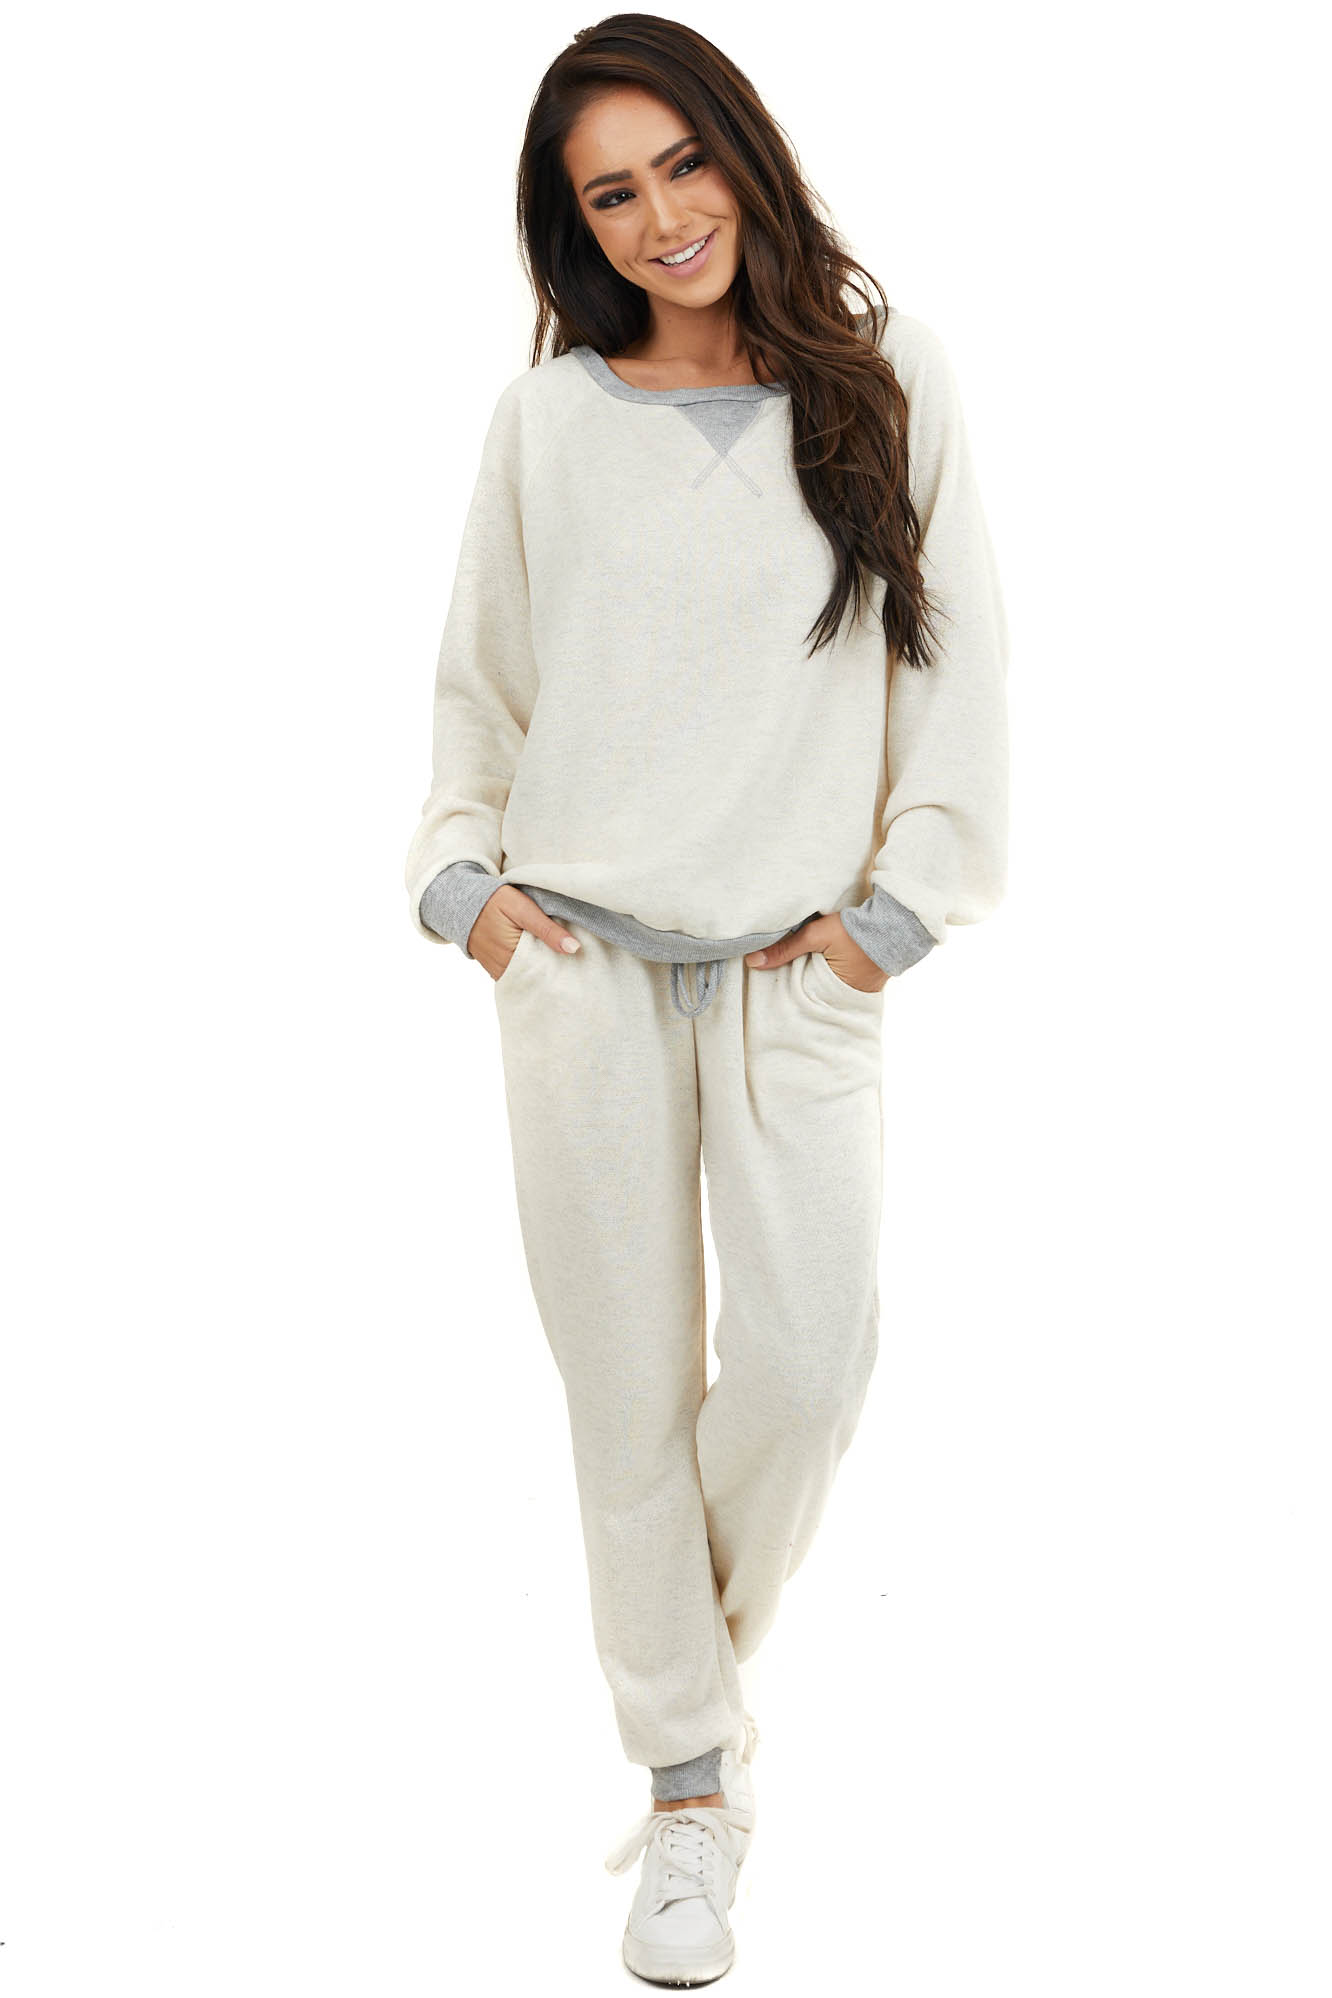 Cream Long Sleeve Loungewear Top with Grey Contrast Trim